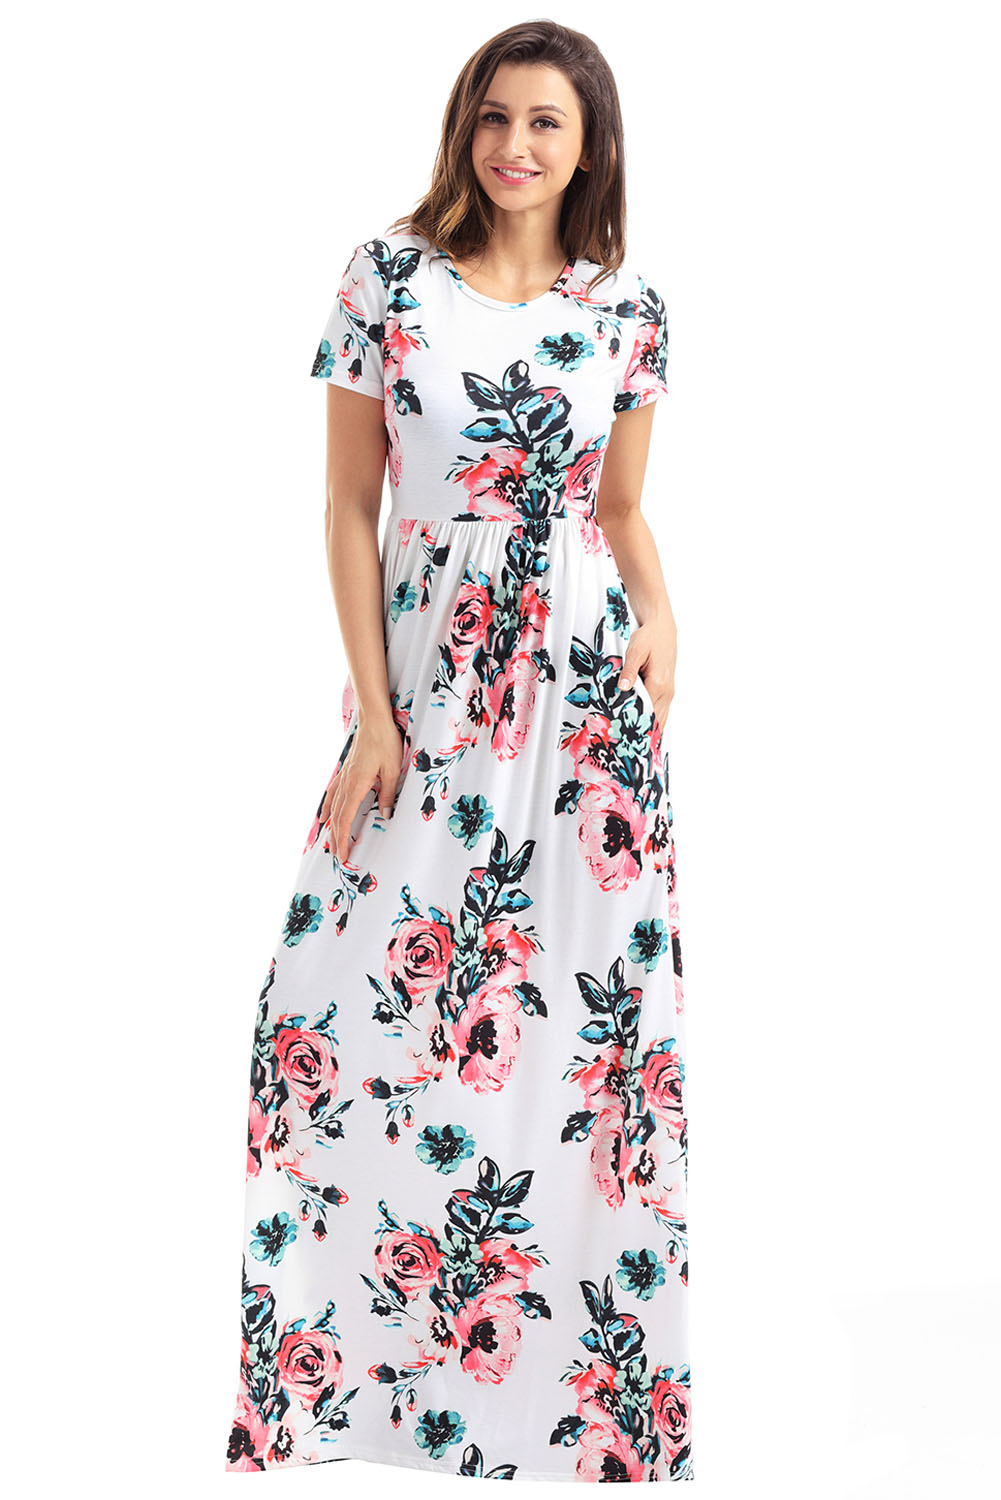 8a619d693eb Pocket Design Short Sleeve White Floral Maxi Dress ZEKELA.com. Loading zoom